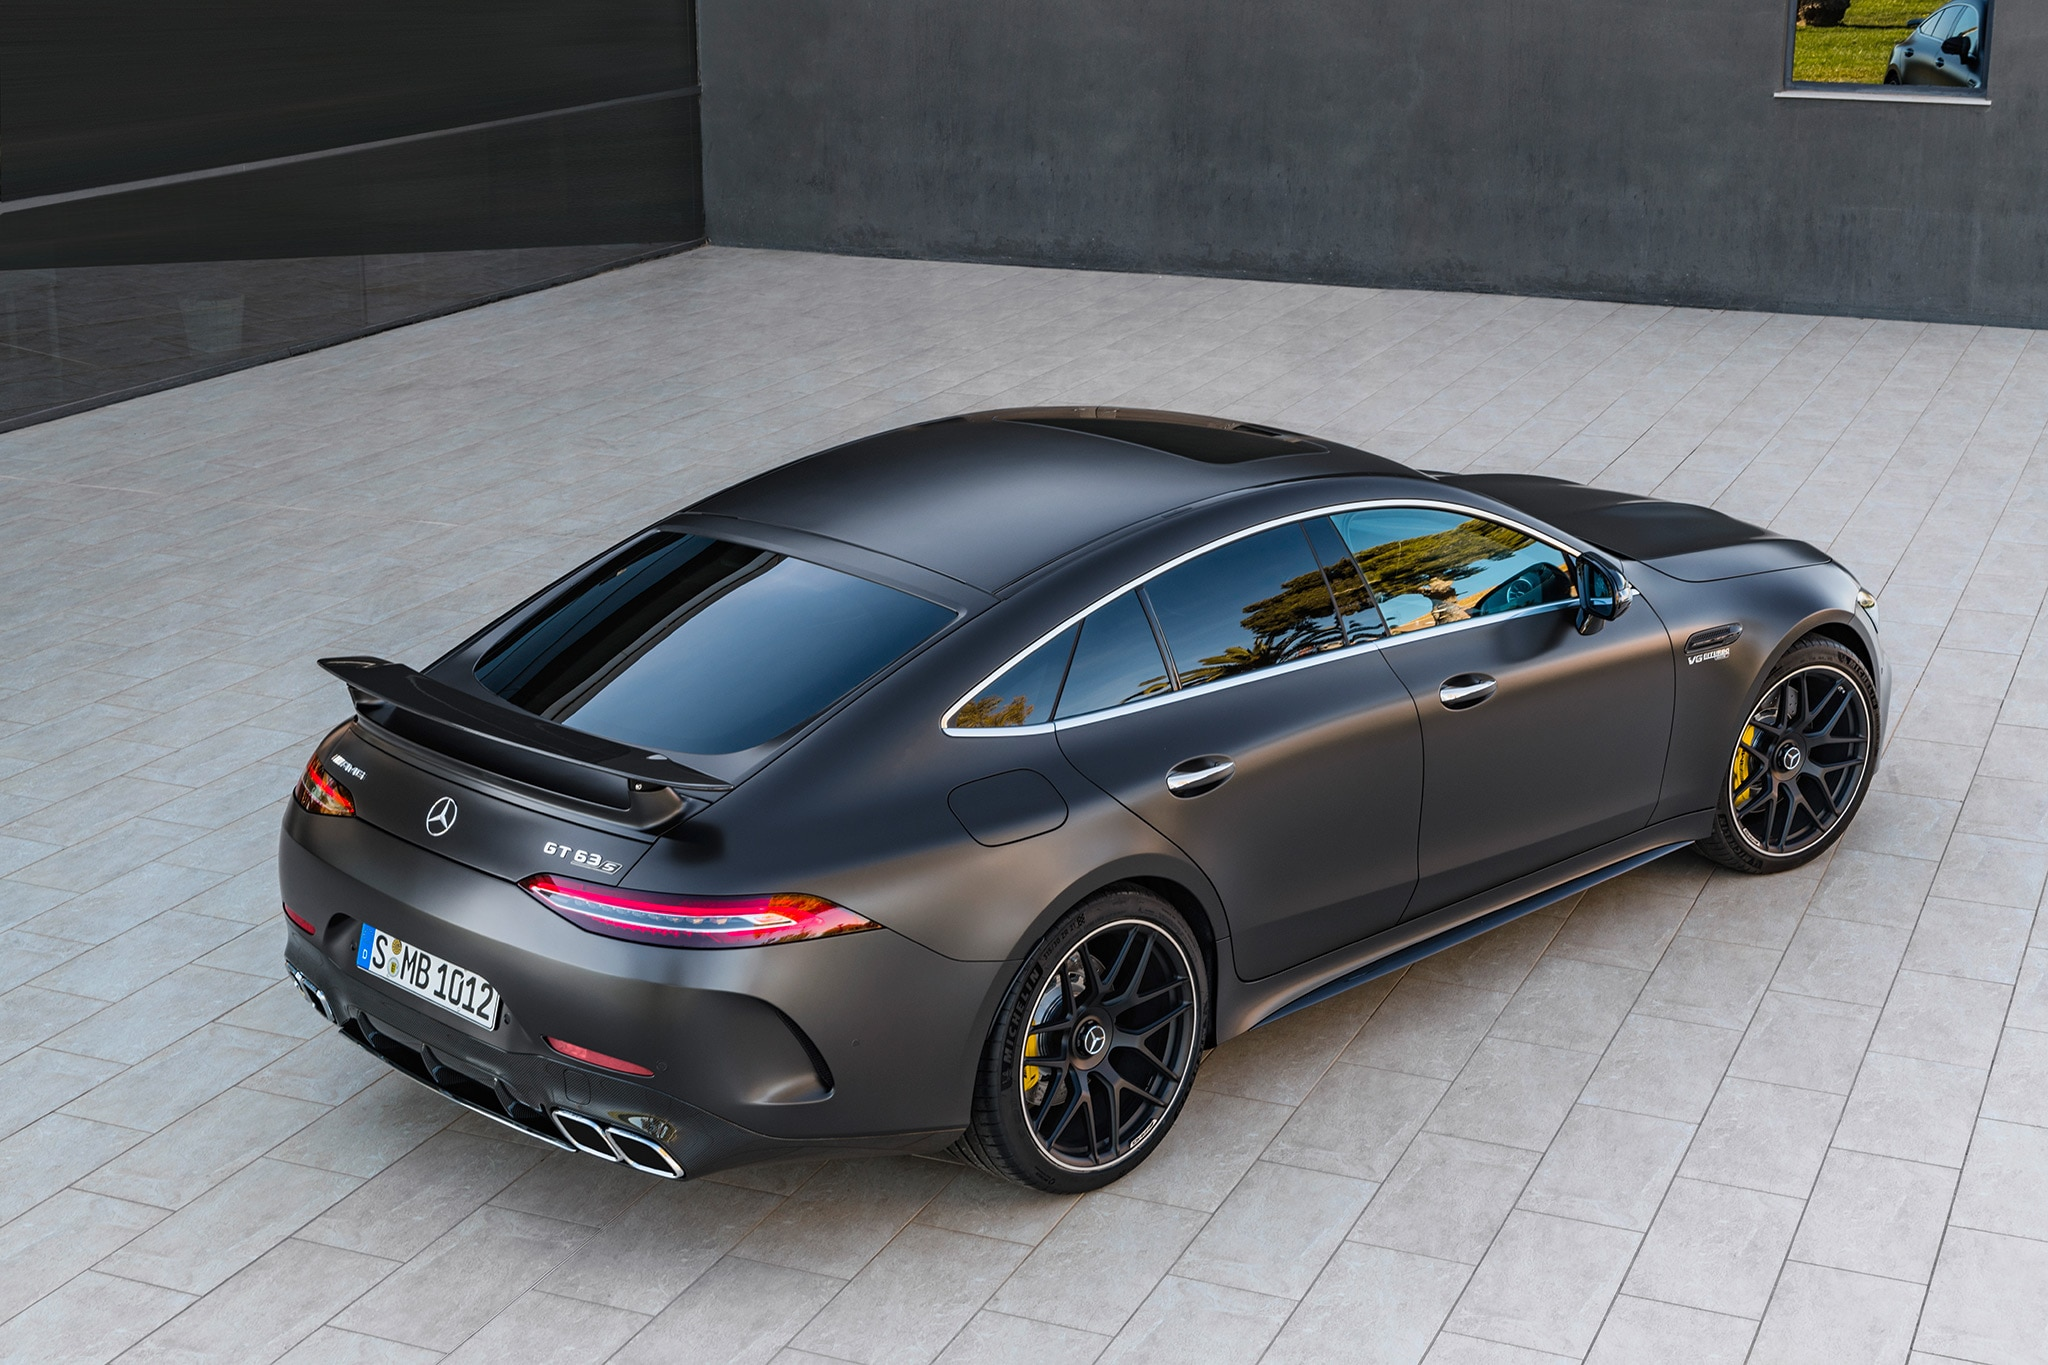 2019 mercedes amg gt 4 door coupe arrives at last automobile magazine. Black Bedroom Furniture Sets. Home Design Ideas